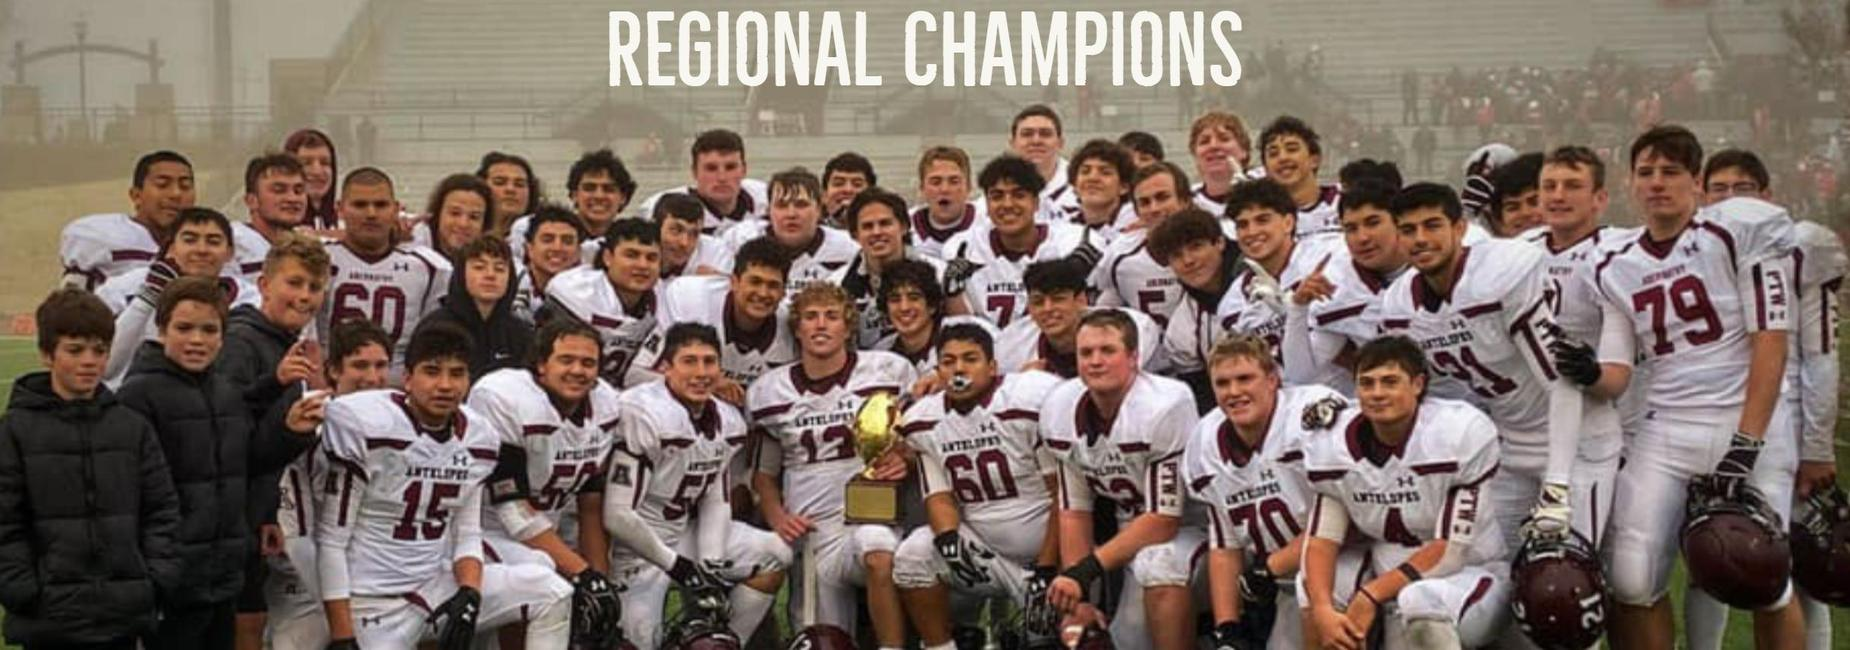 High School football team pose with trophy